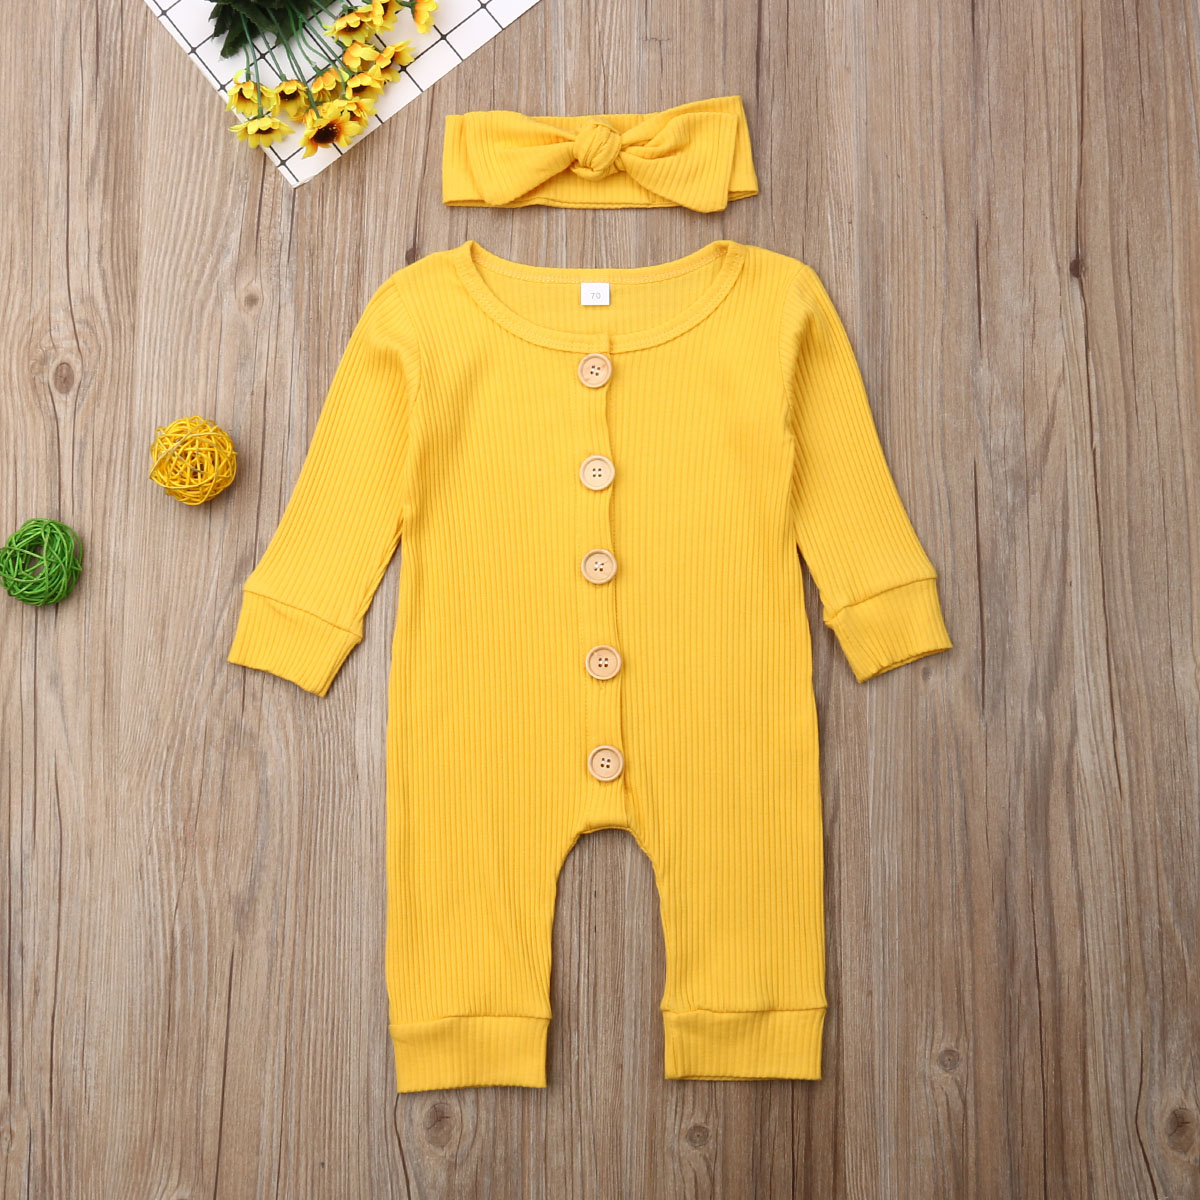 Hbef1e199a5fc4aea938f9fb11d71d7dbh Spring Fall Newborn Baby Girl Boy Clothes Long Sleeve Knitted Romper + Headband Jumpsuit 2PCS Outfit 0-24M